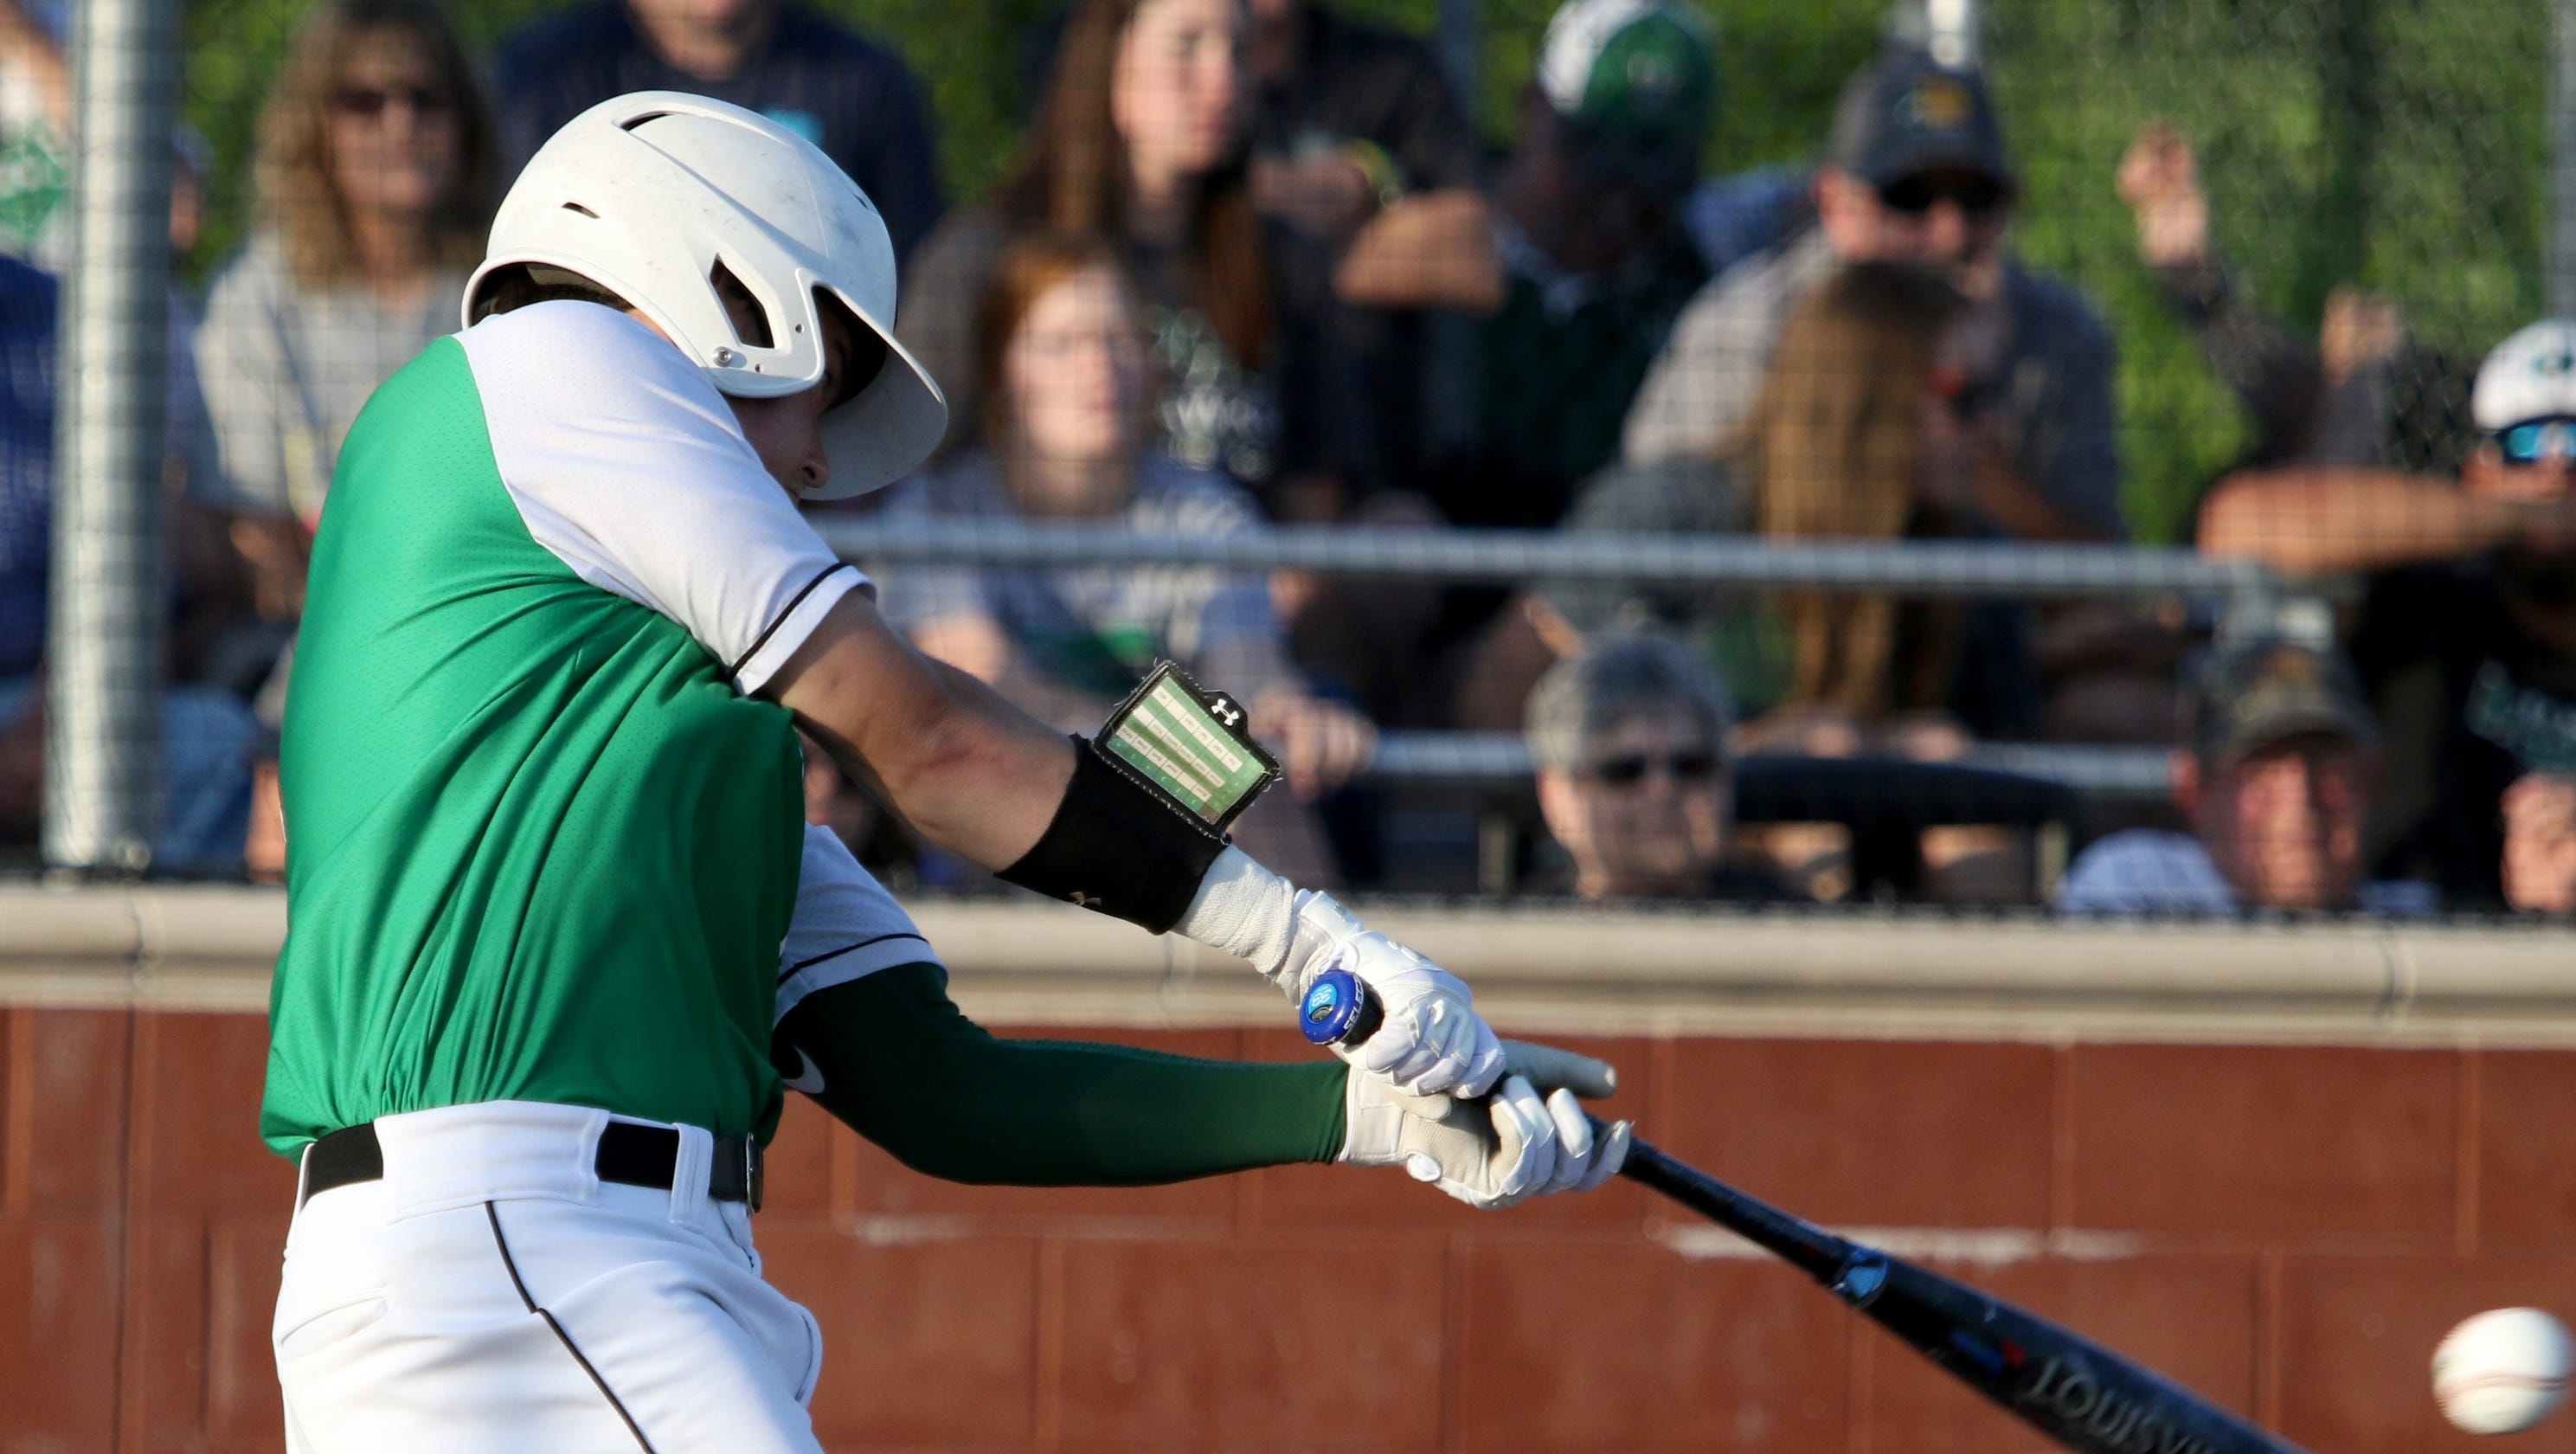 UIL Baseball: Iowa Park Power Pasts Decatur For Sweep In